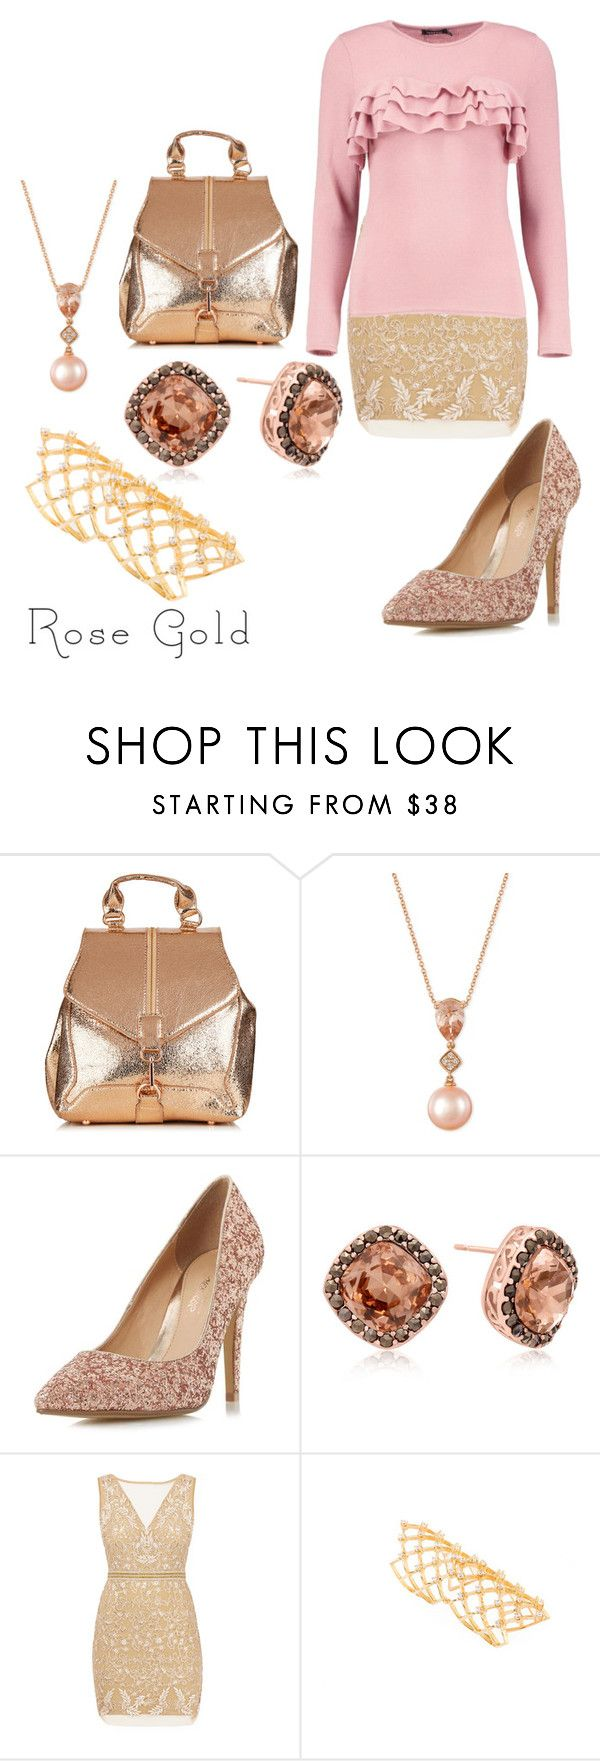 So Pretty Rose Gold Jewelry by blancadiaz1 liked on Polyvore